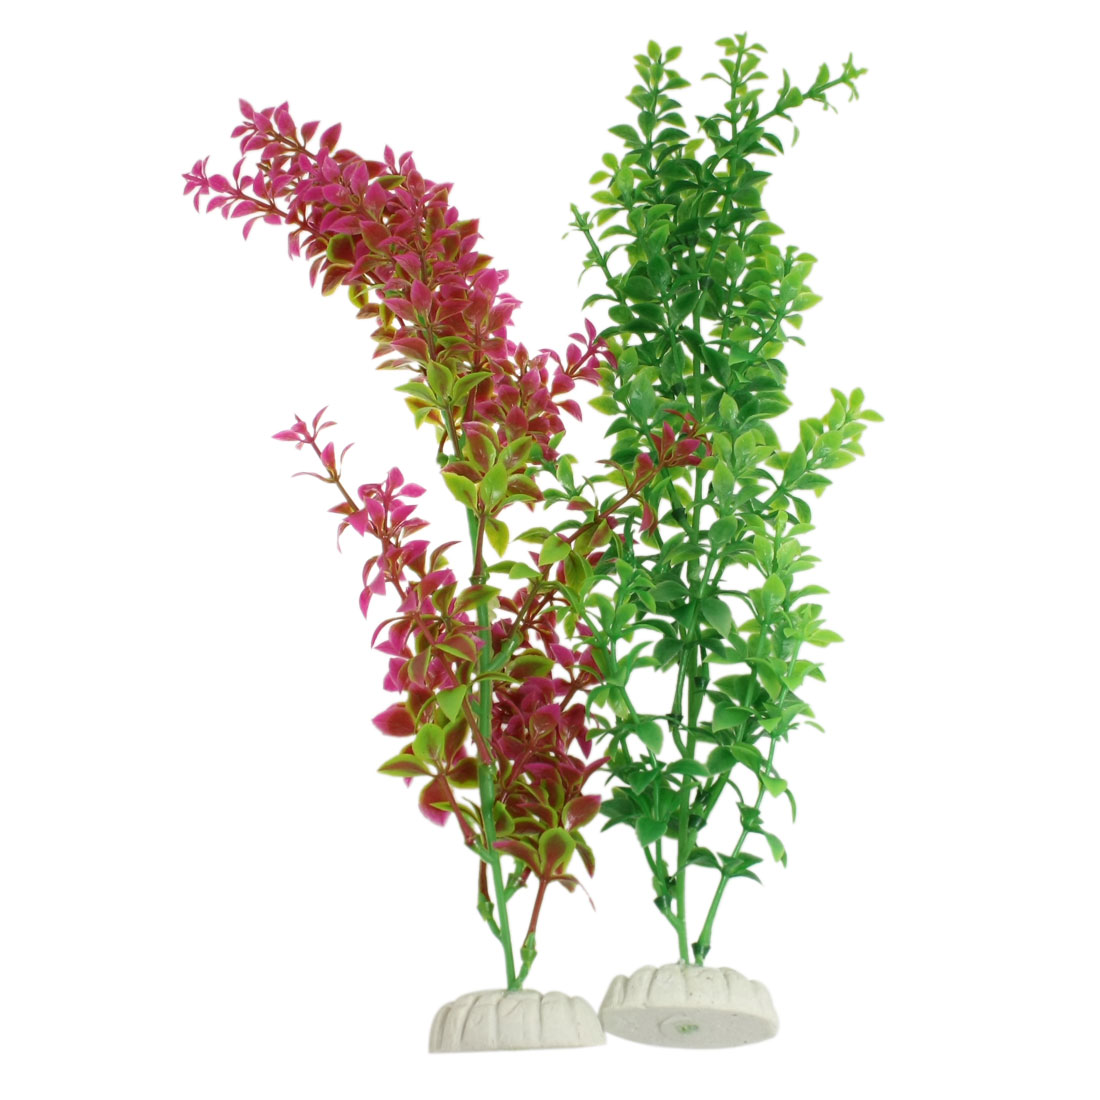 2 Pcs Magenta Green Plastic Aquatic Plants Decor for Aquarium